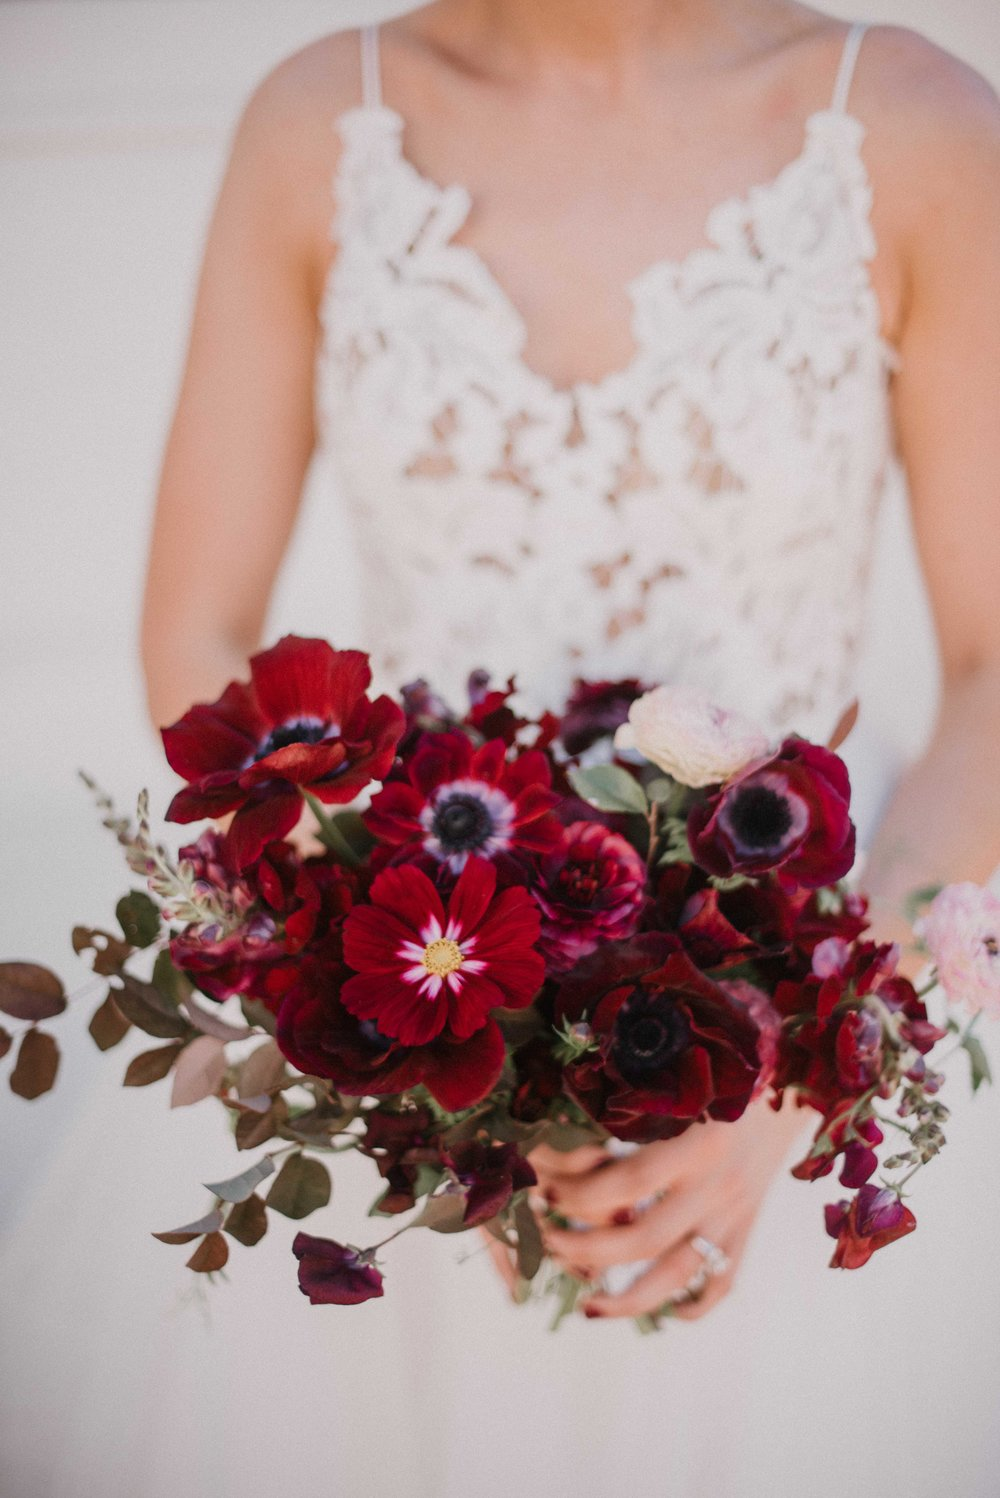 MULLBERRY SPRING Wedding at Il Mercato